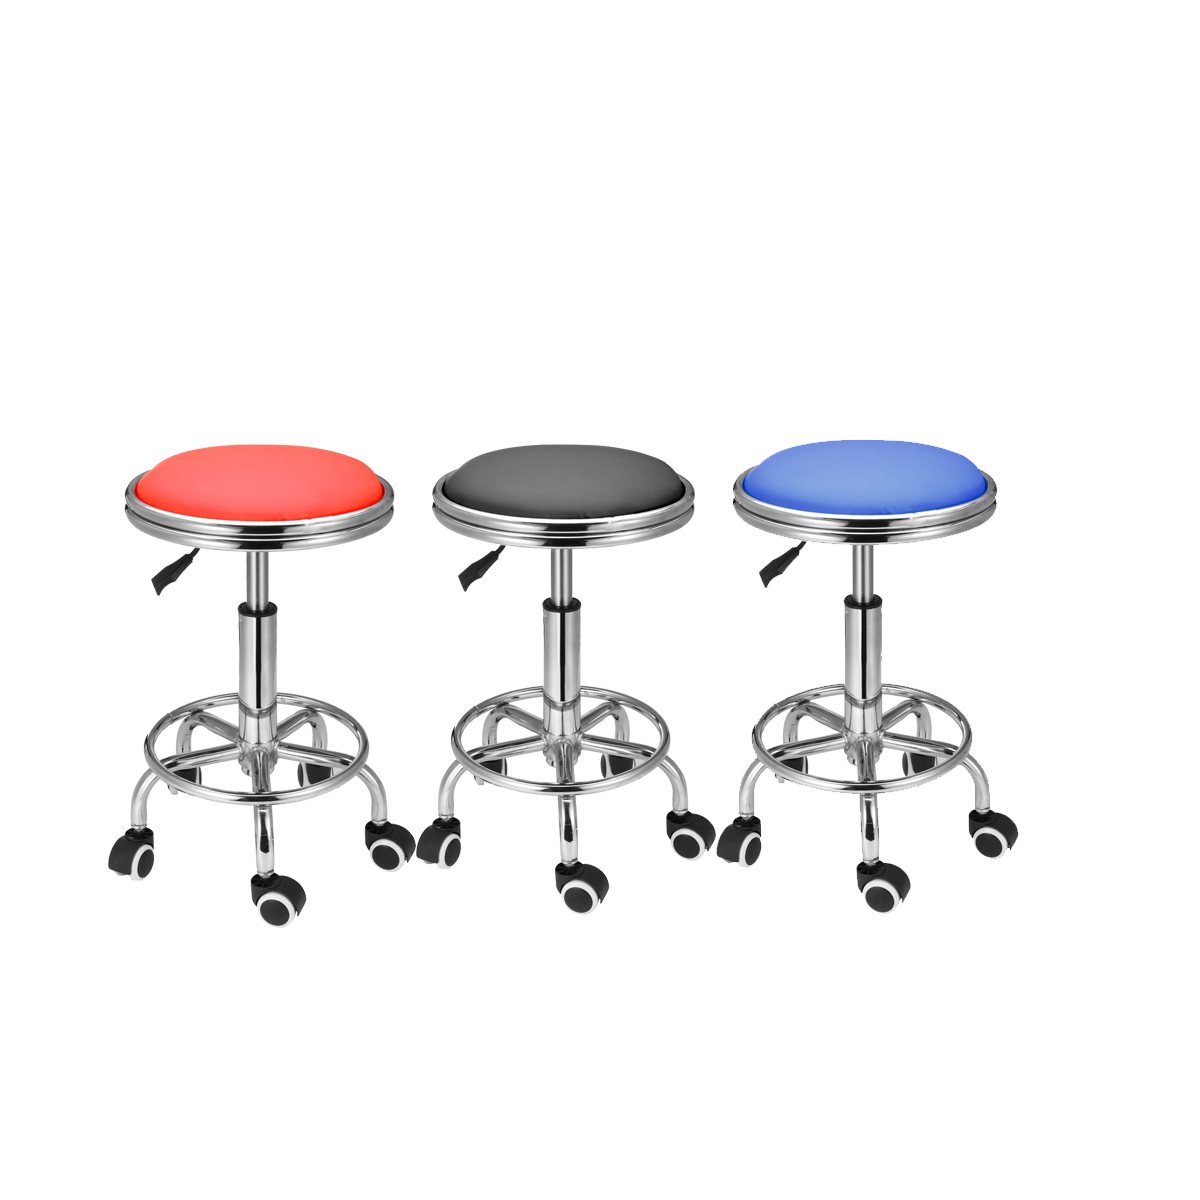 Leather Bar Chair With Roller Adjustable Height Barber Salon Chair Hairdressing Styling Chair Tattoo Massage Tool Round